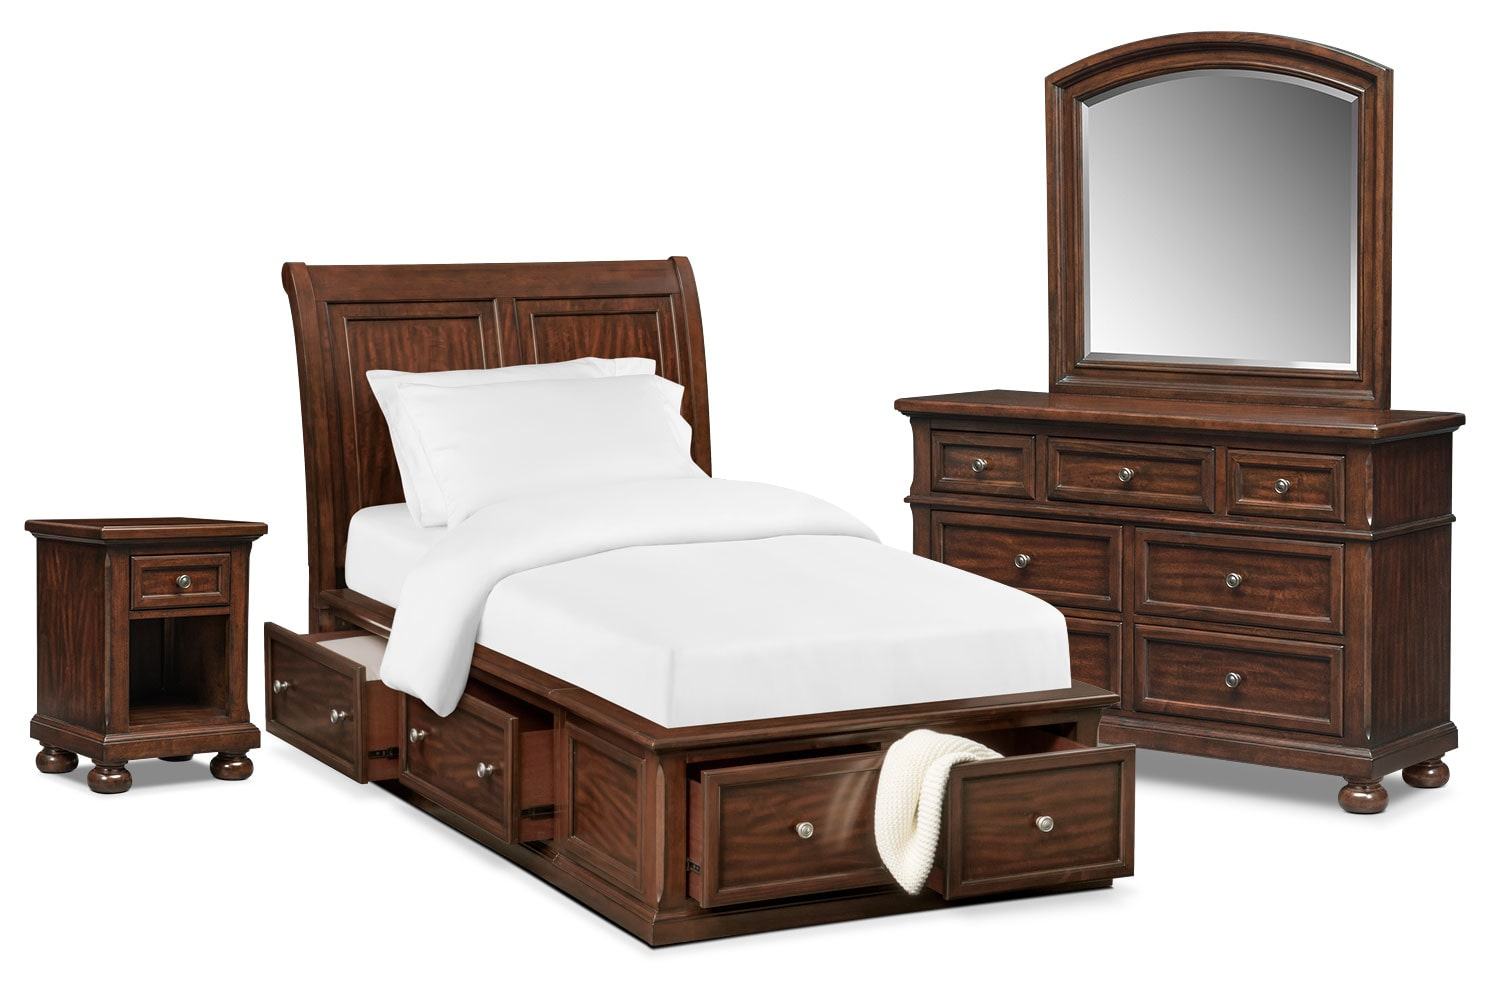 hanover youth 6 piece twin sleigh bedroom set with storage cherry american signature furniture. Black Bedroom Furniture Sets. Home Design Ideas